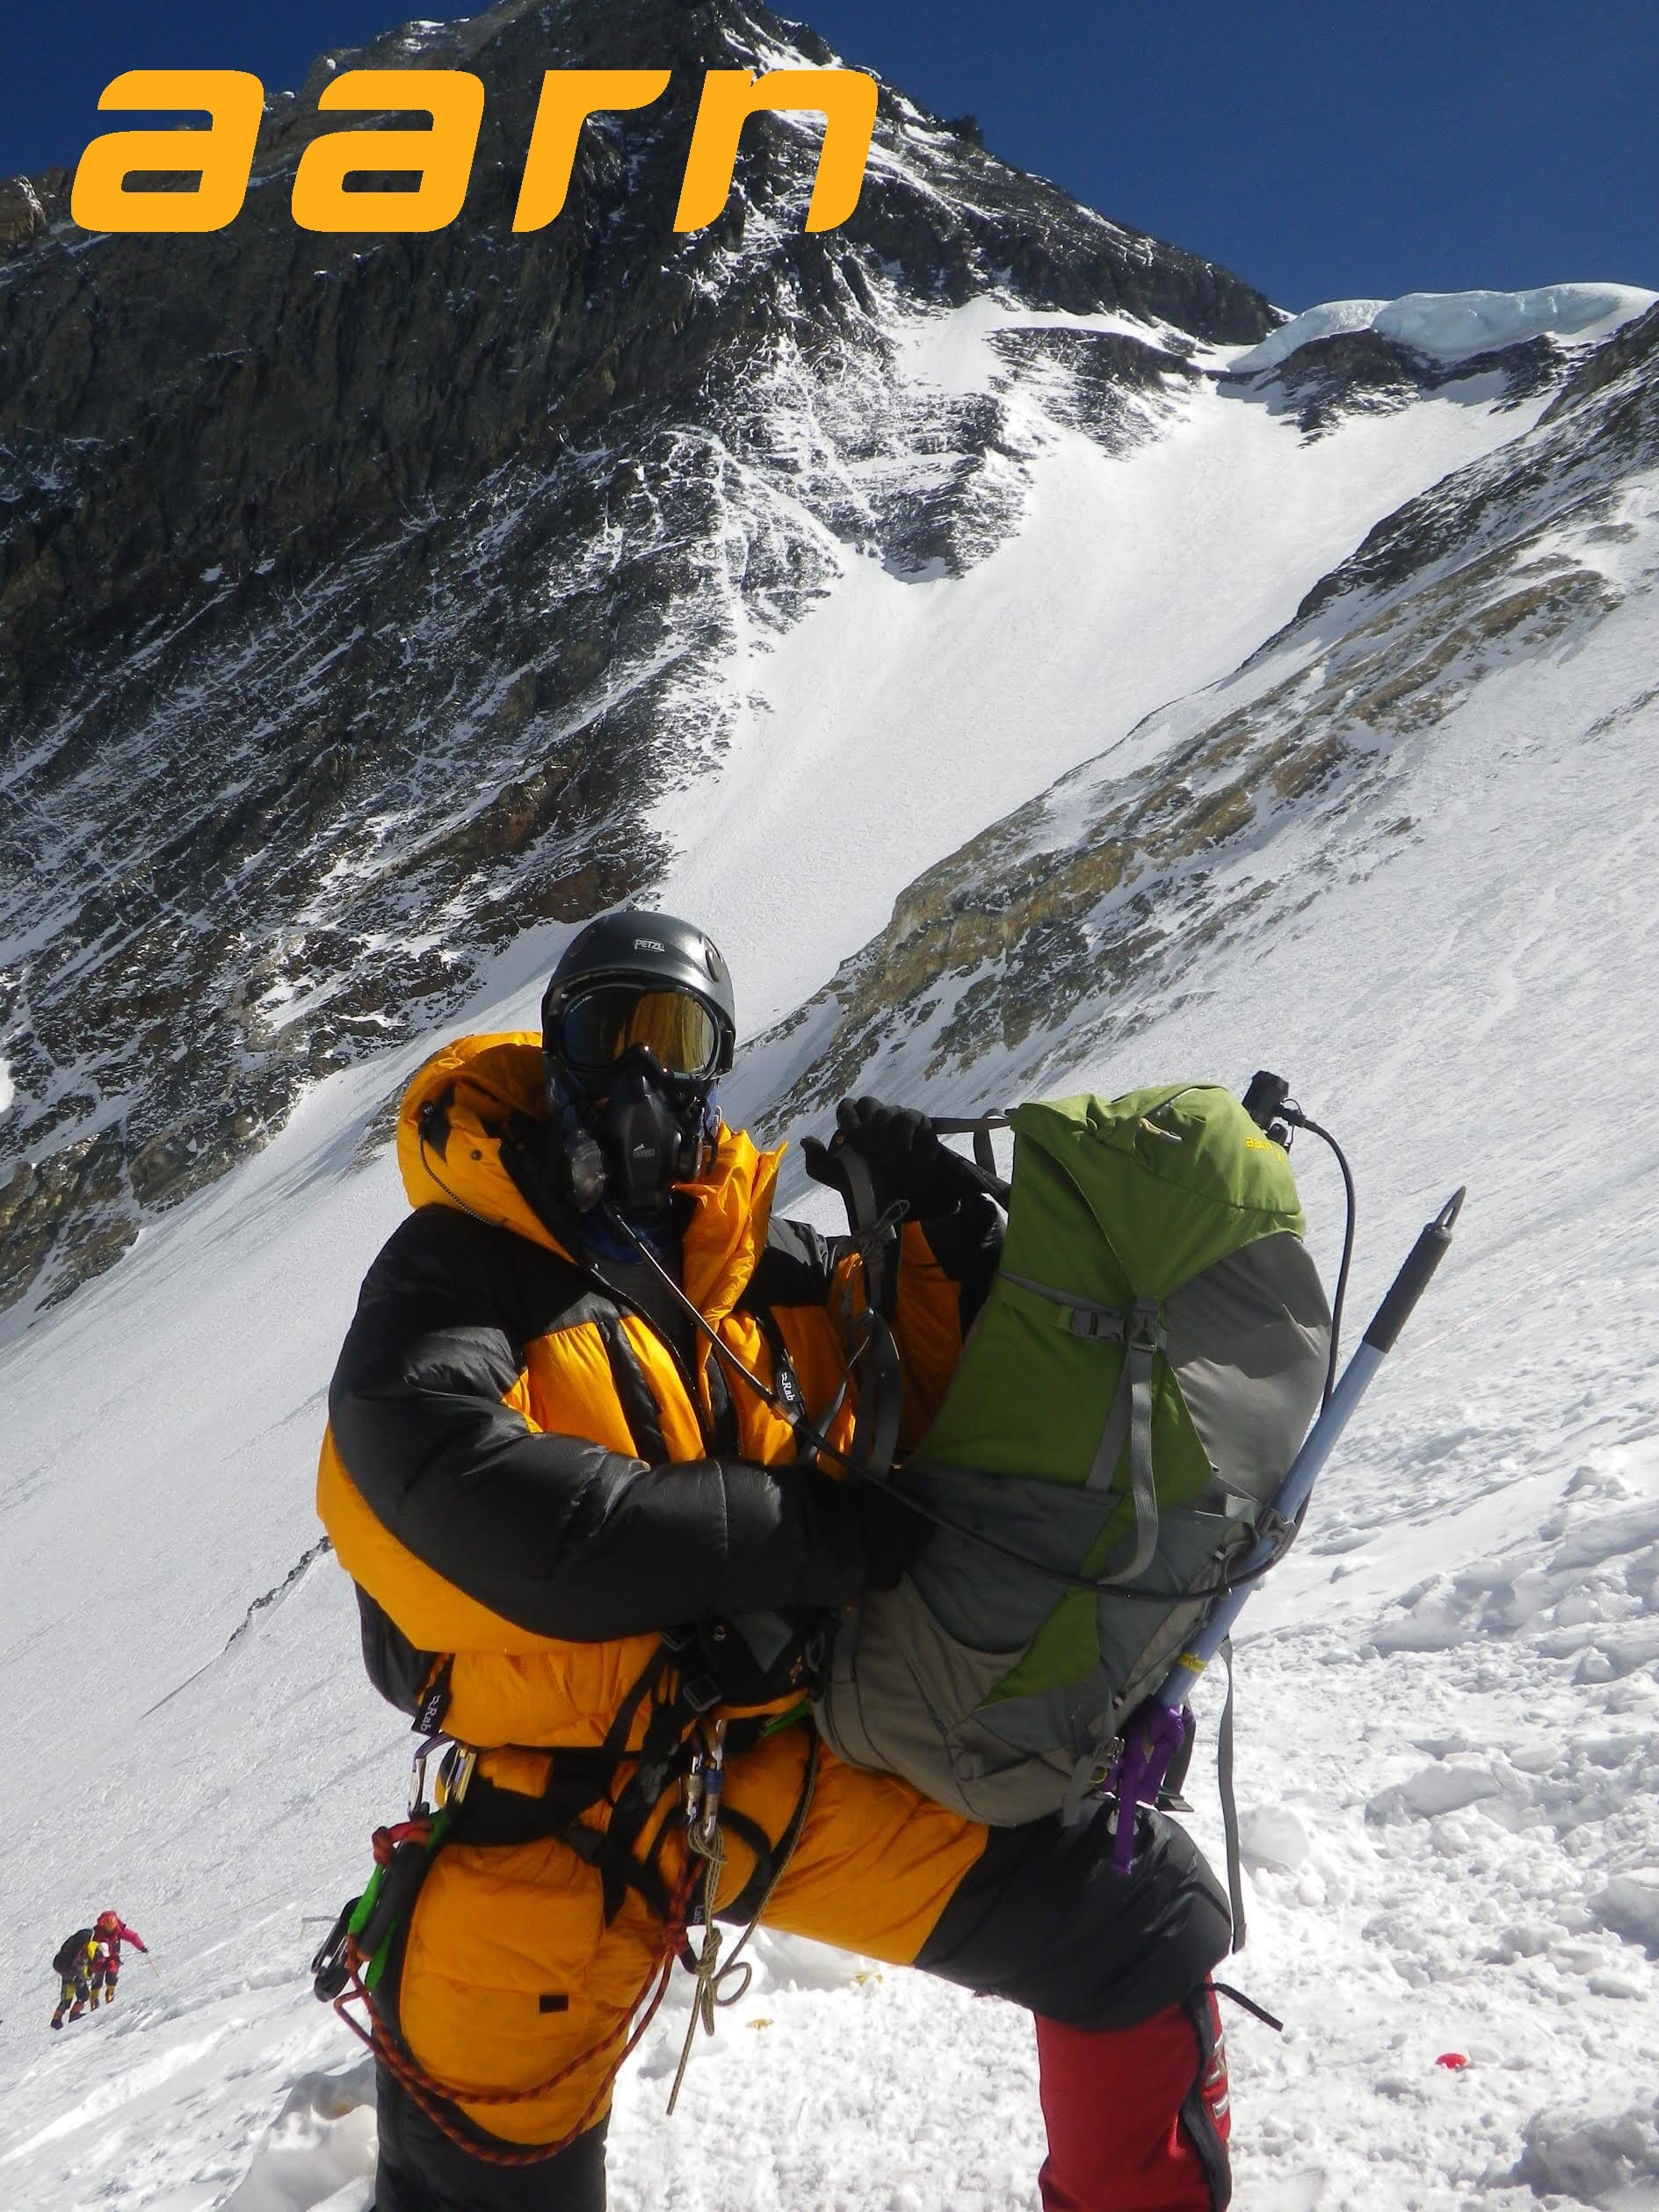 Summit Mt Everest with an Aarn Peak Aspiration Backpack